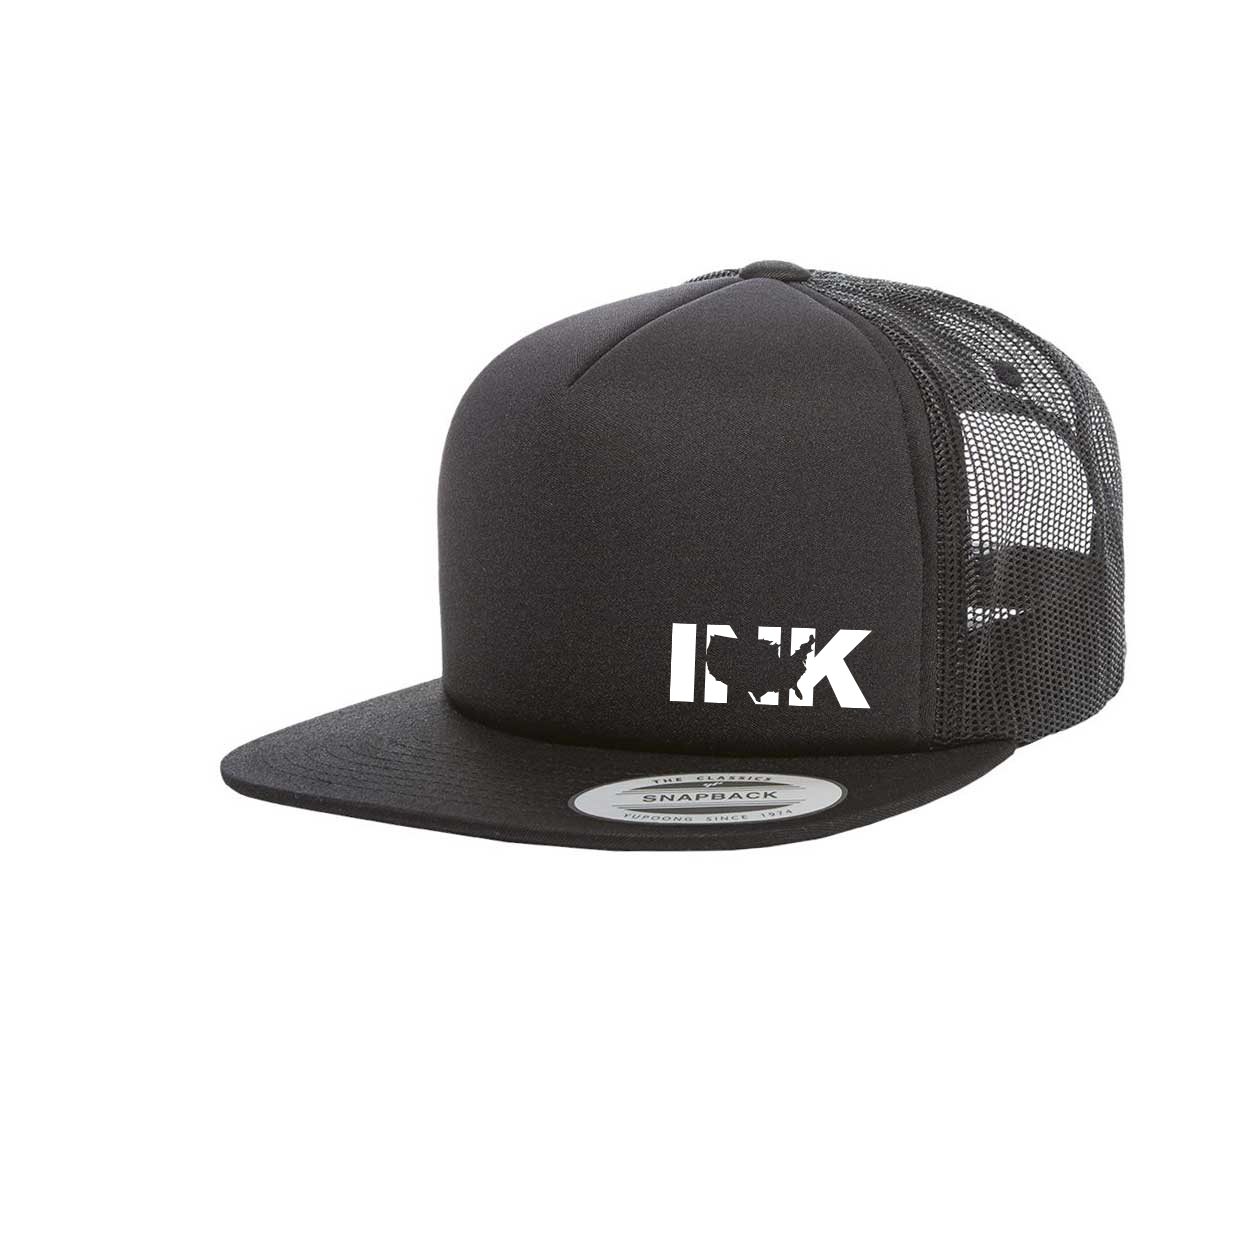 Ink United States Night Out Premium Foam Flat Brim Snapback Hat Black (White Logo)